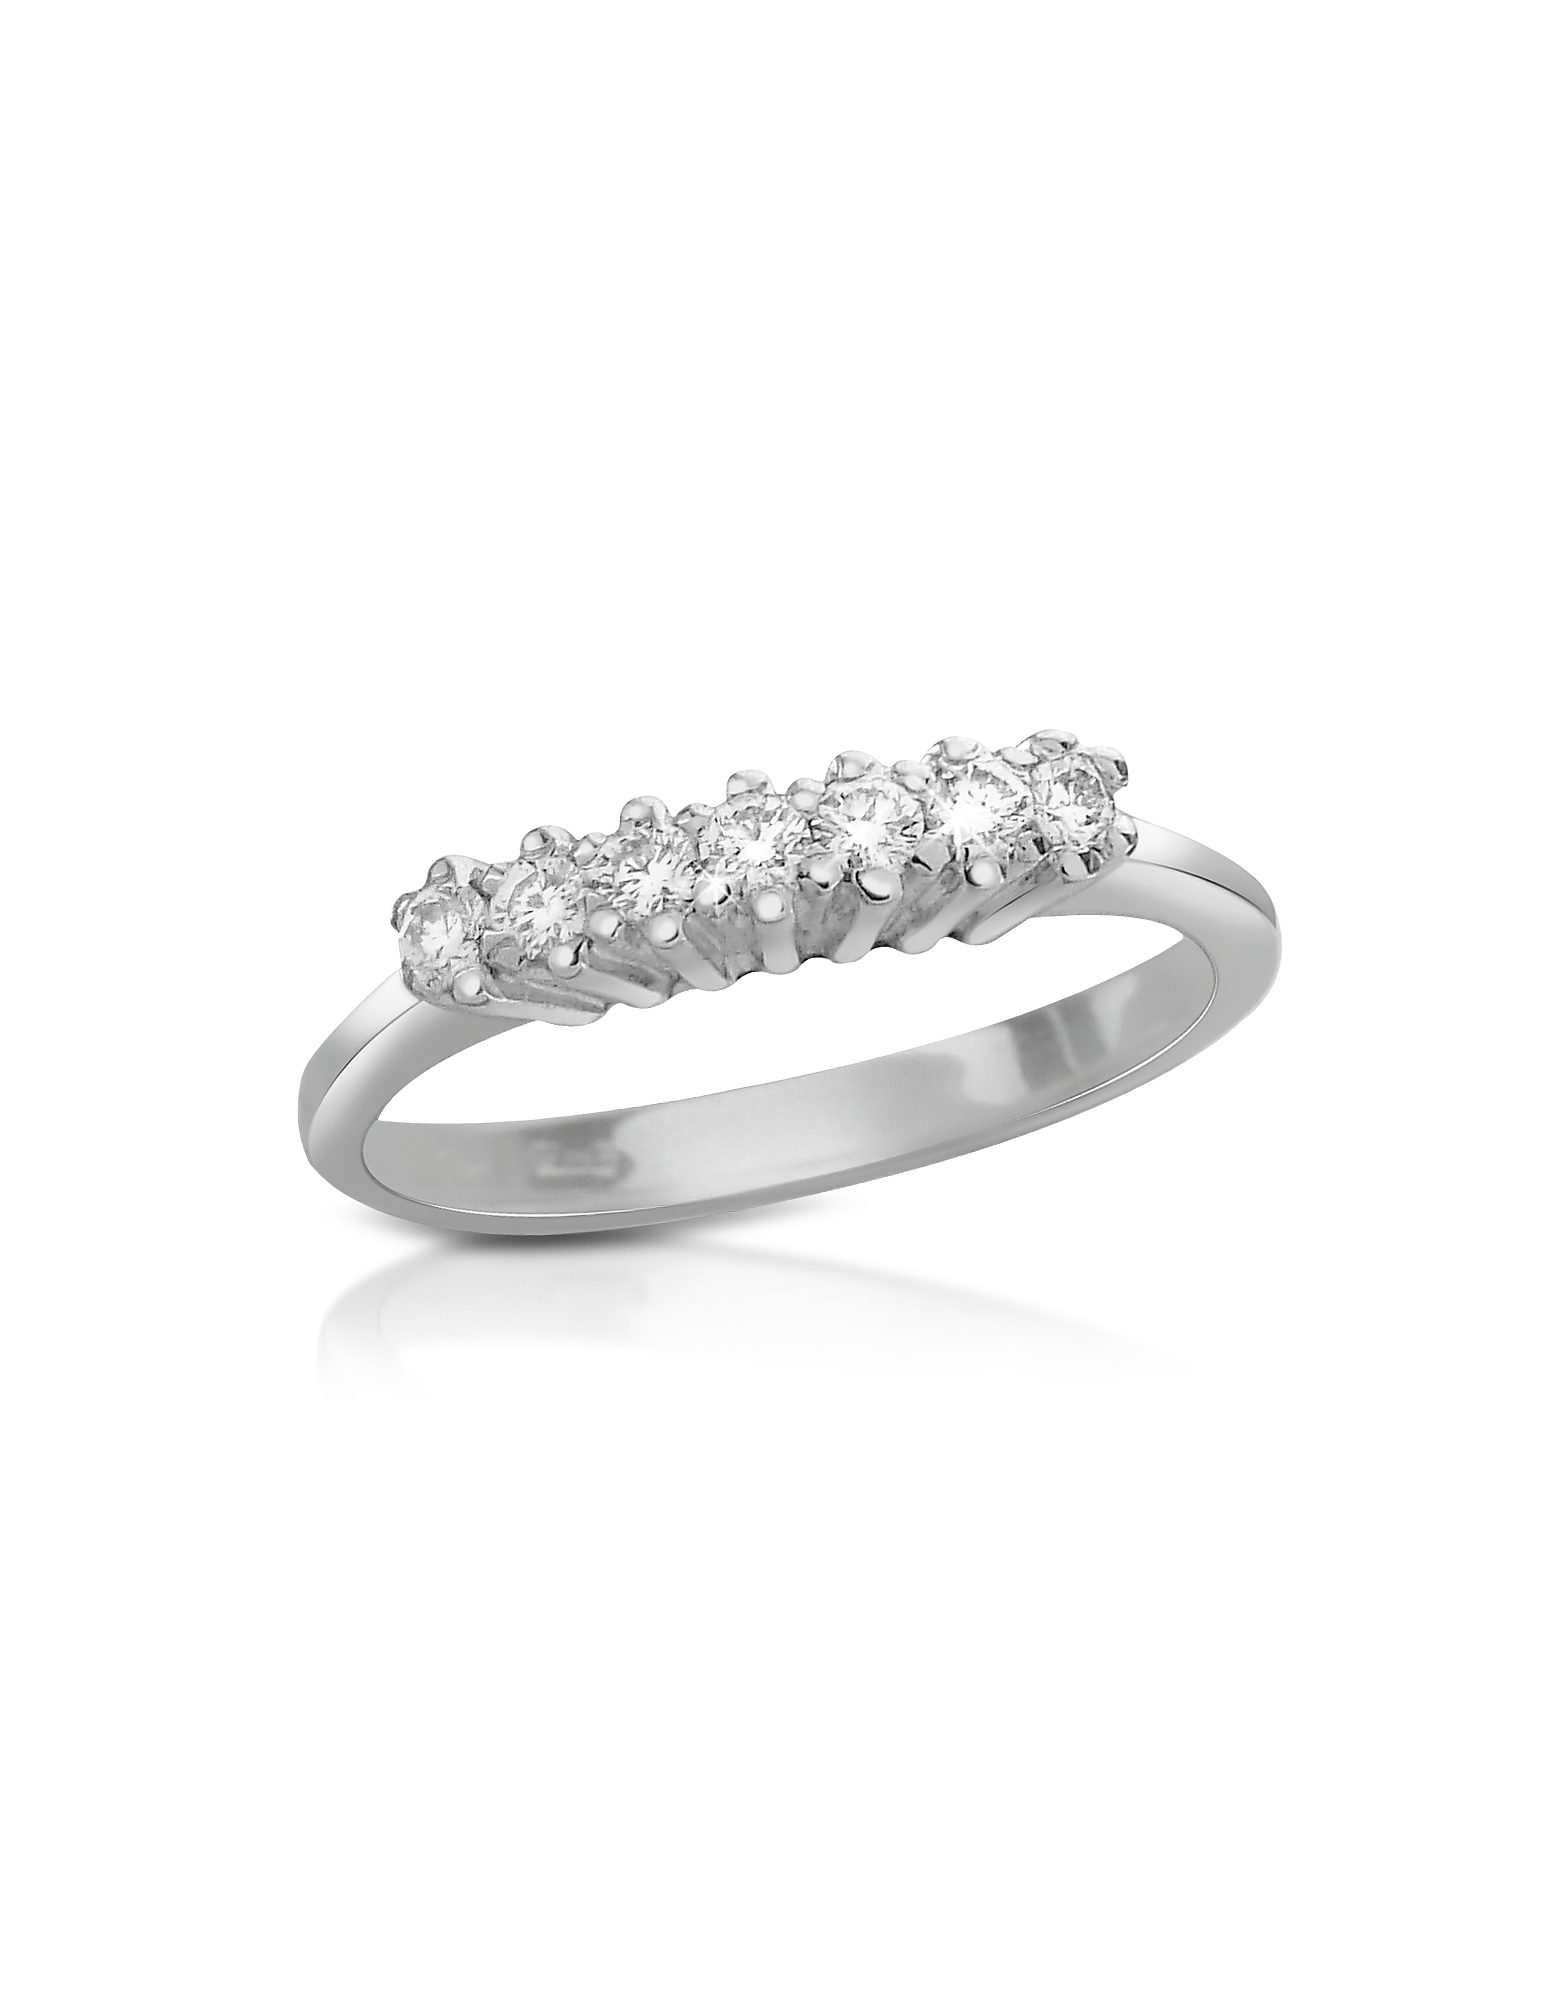 Forzieri Rings, 0.10 ct Diamond 18K Gold Band Ring